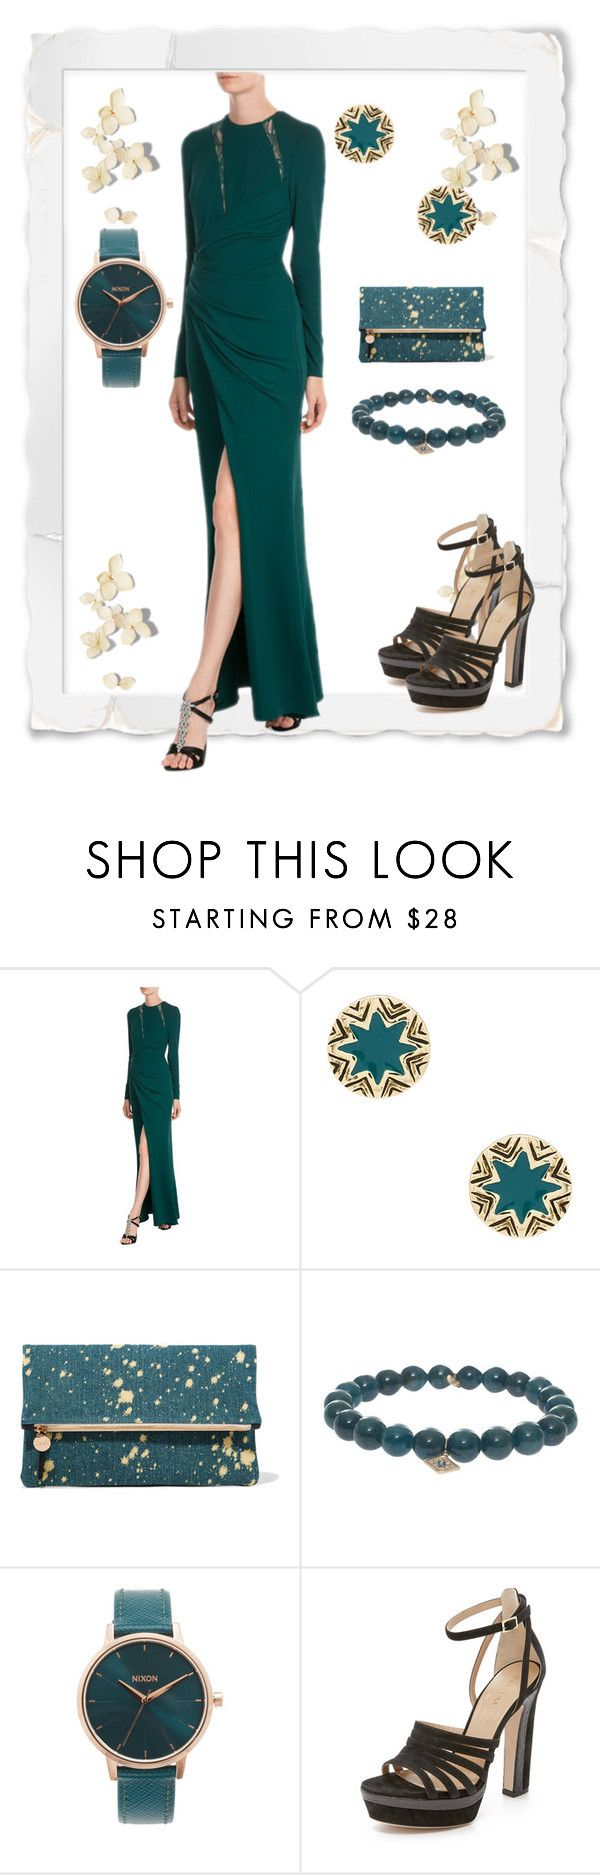 """""""Green Slit Attire"""" by paige-brrian ❤ liked on Polyvore featuring Elie Saab, House of Harlow 1960, Clare V., Sydney Evan, Nixon and Tamara Mellon"""